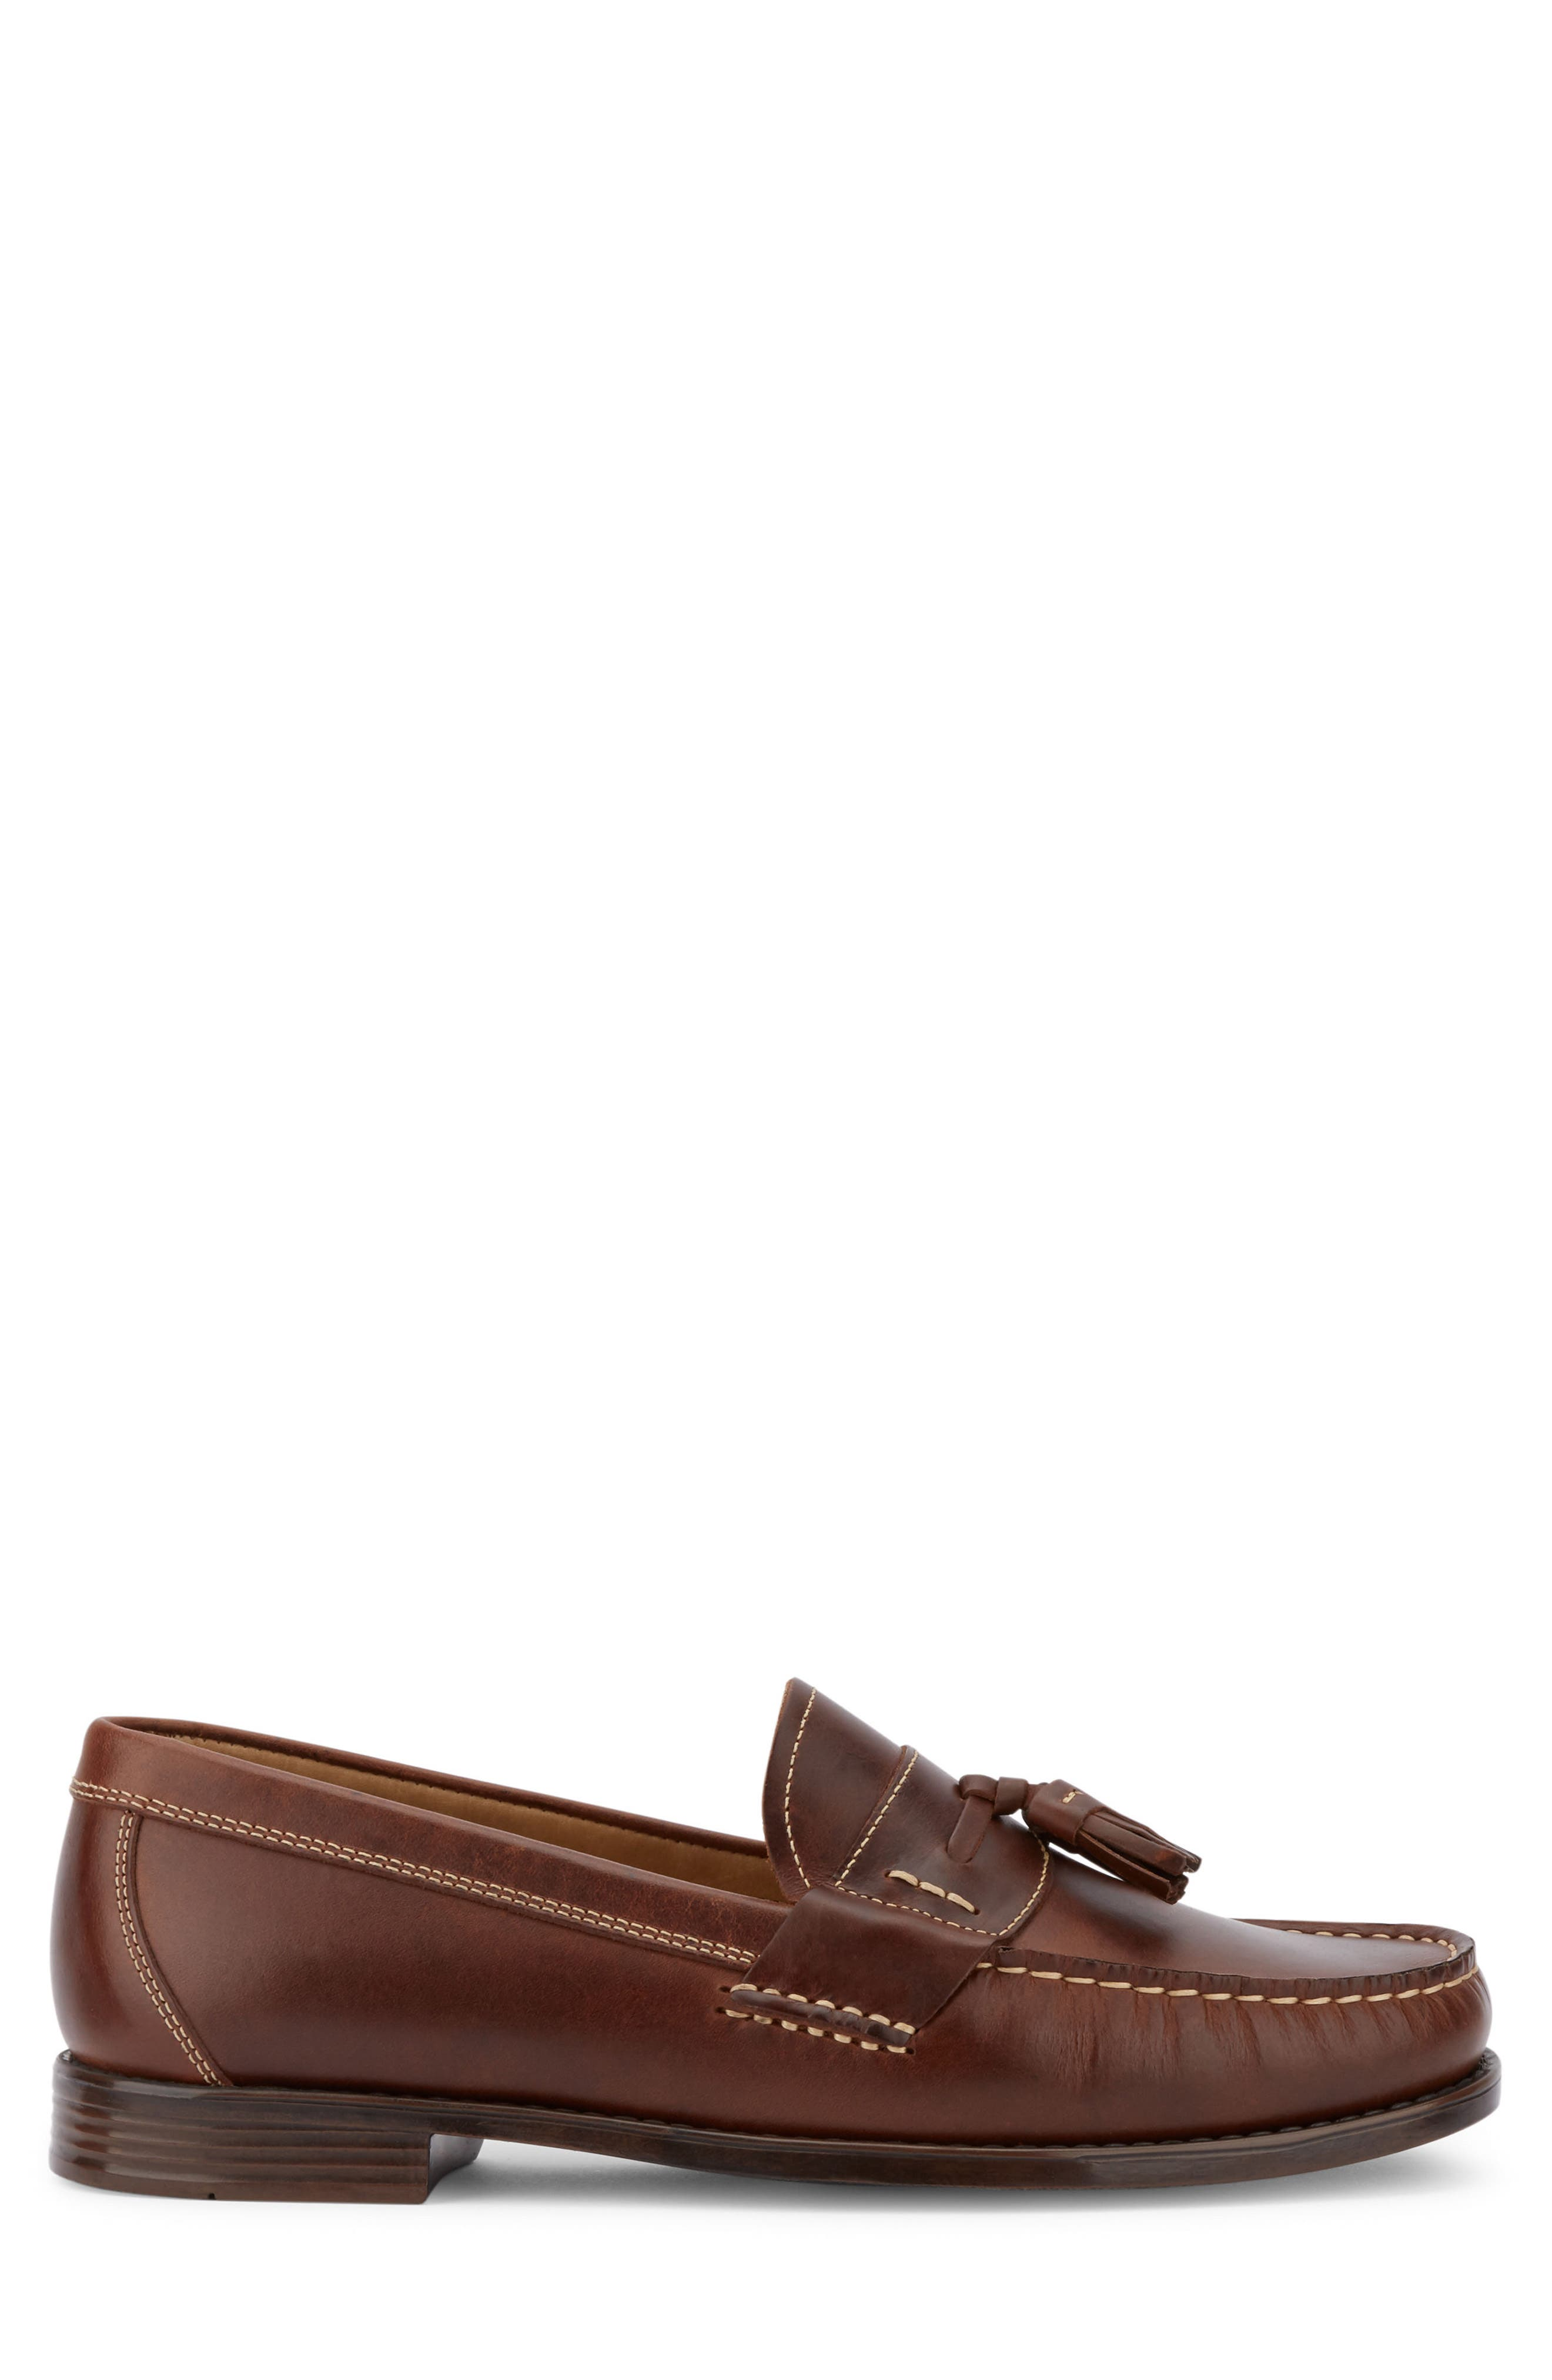 Wallace Tassel Loafer,                             Alternate thumbnail 3, color,                             Dark Brown Leather